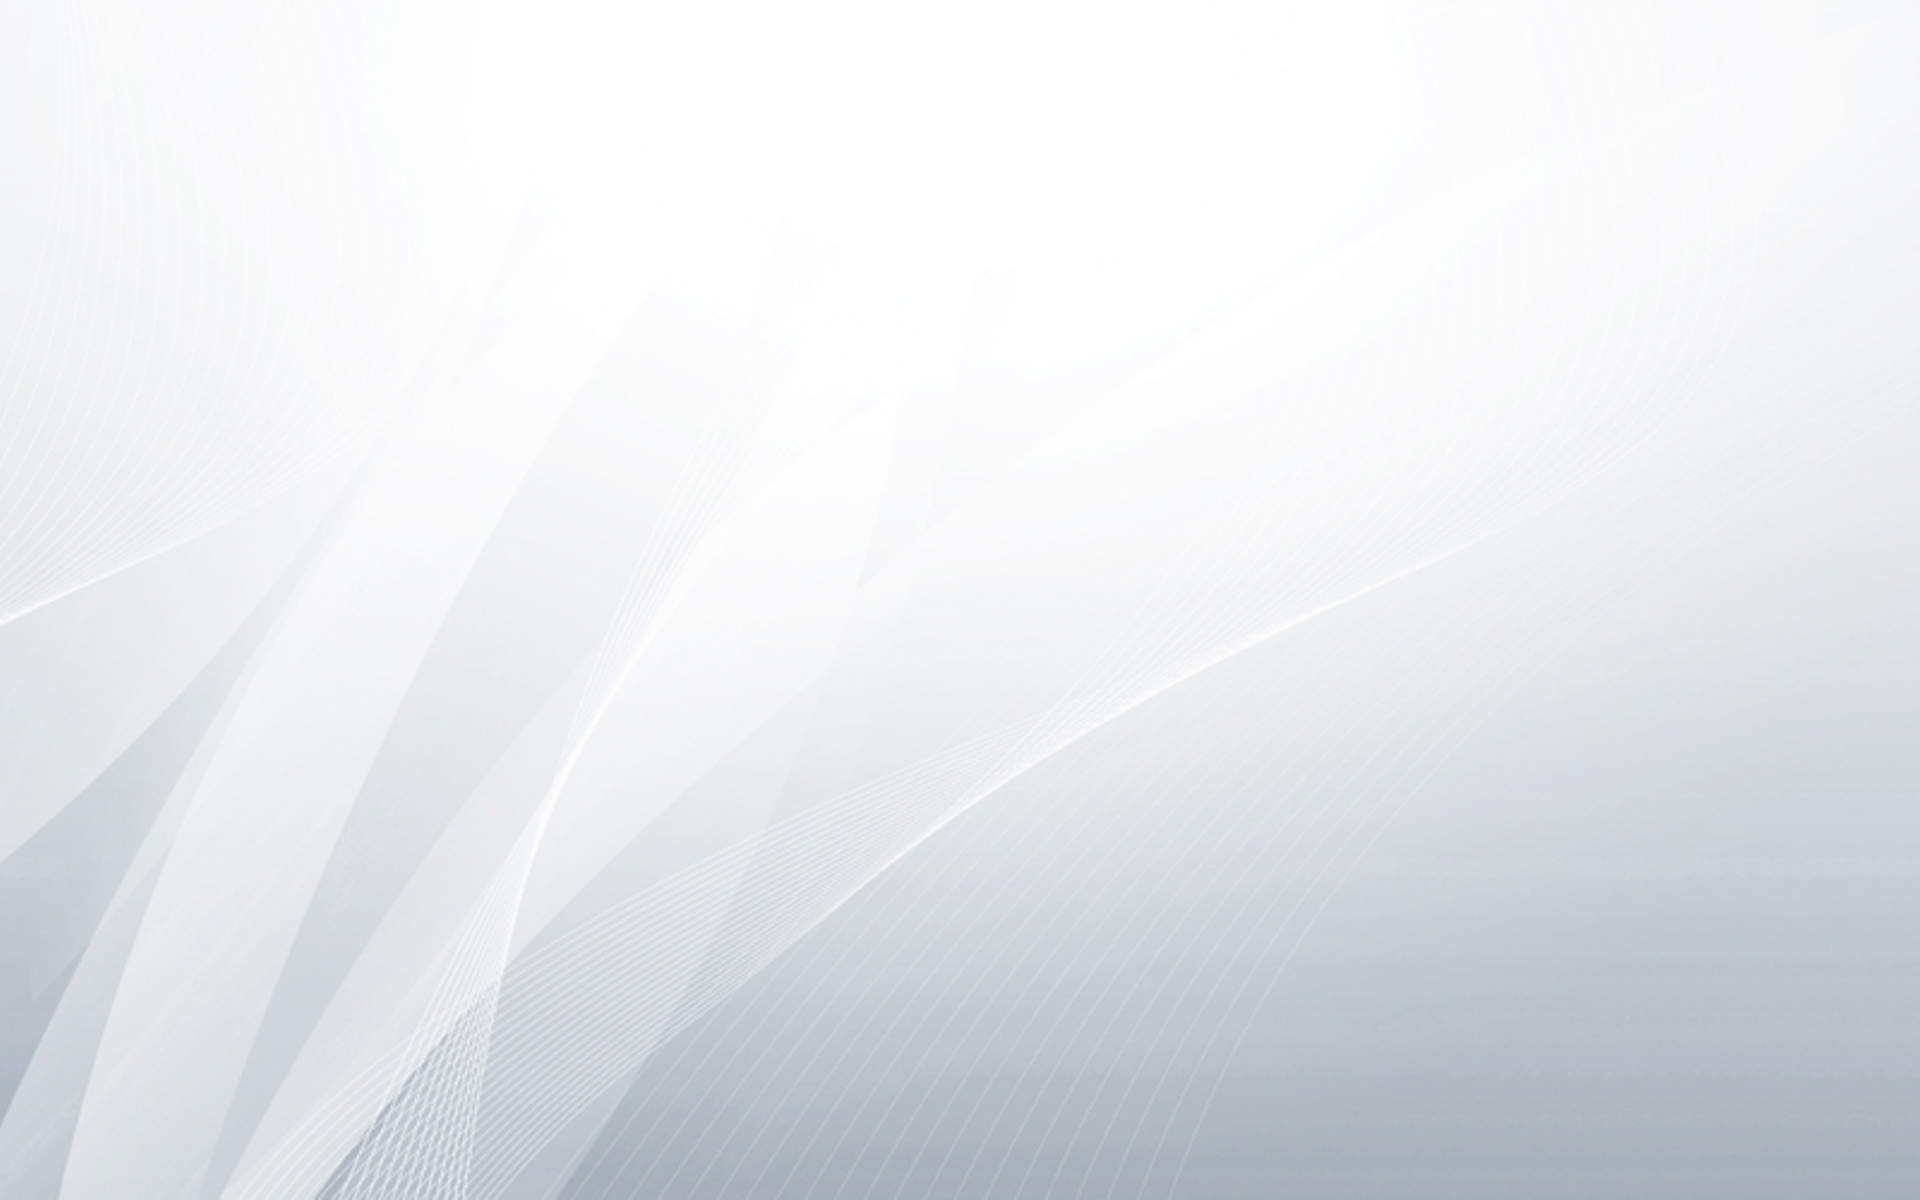 High Definition Collection: White Wallpaper Abstract, 41 Full HD